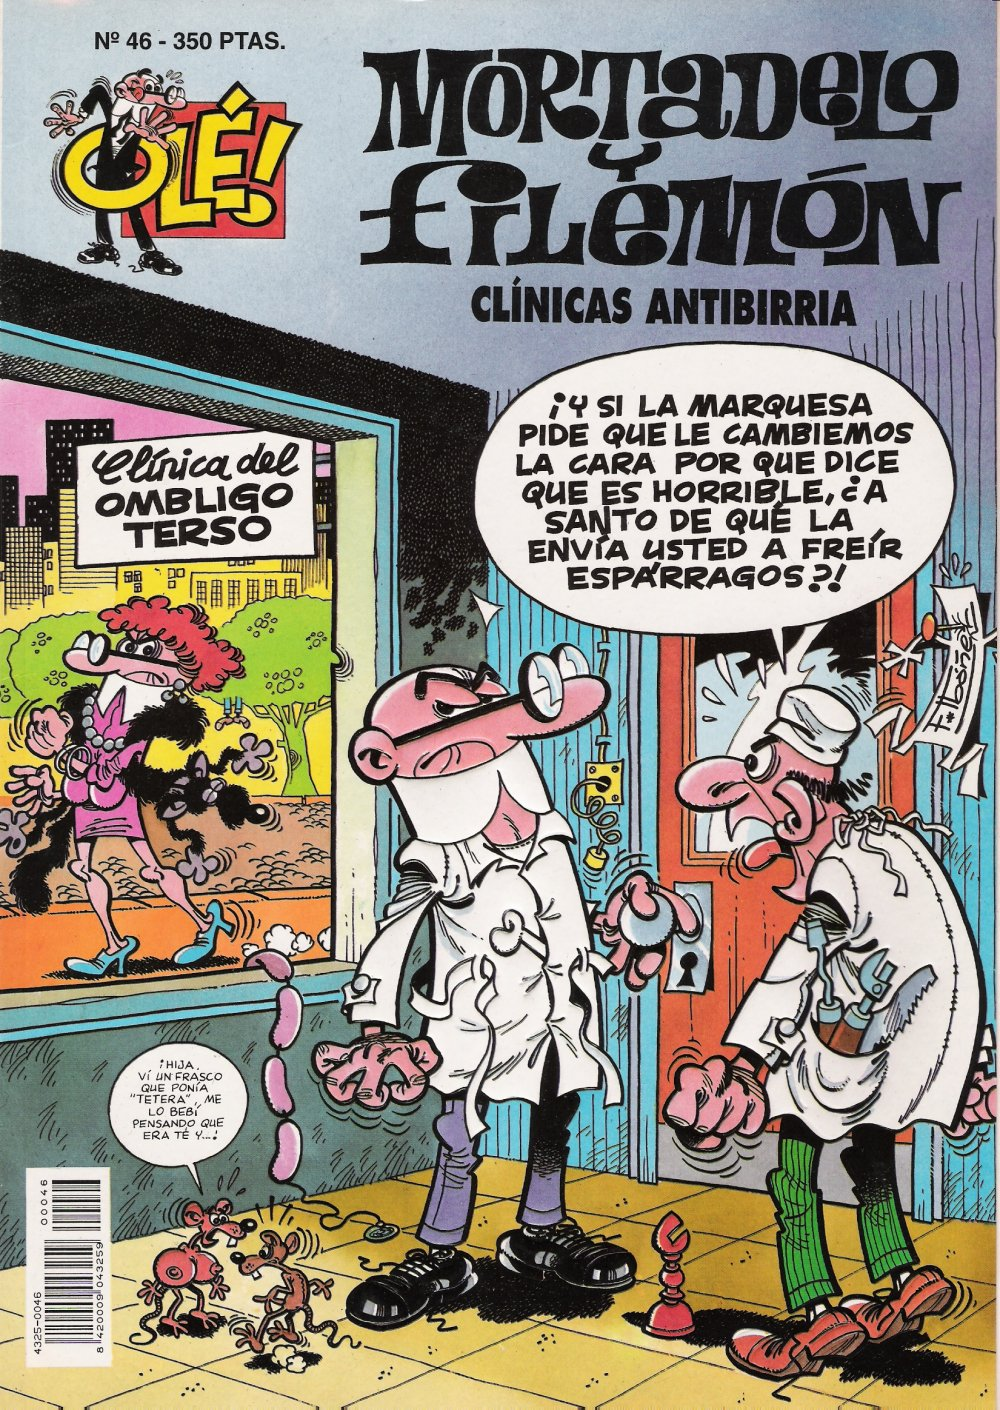 Clínicas Antibirria - Mortadelo y Filemón